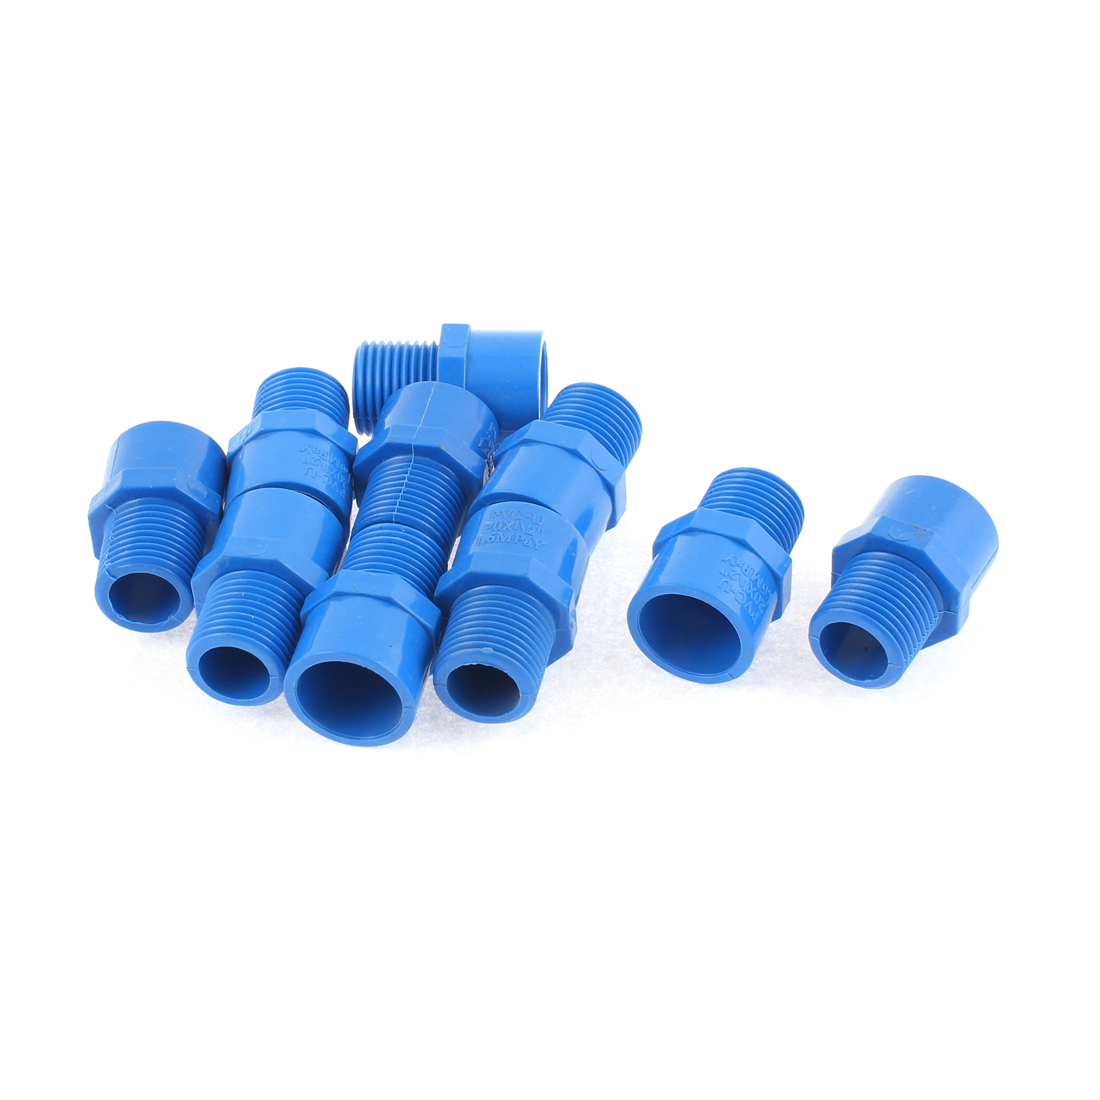 PVC-U 20mm Male Thread Water Pipe Tubing Connector Coupler 10PCS